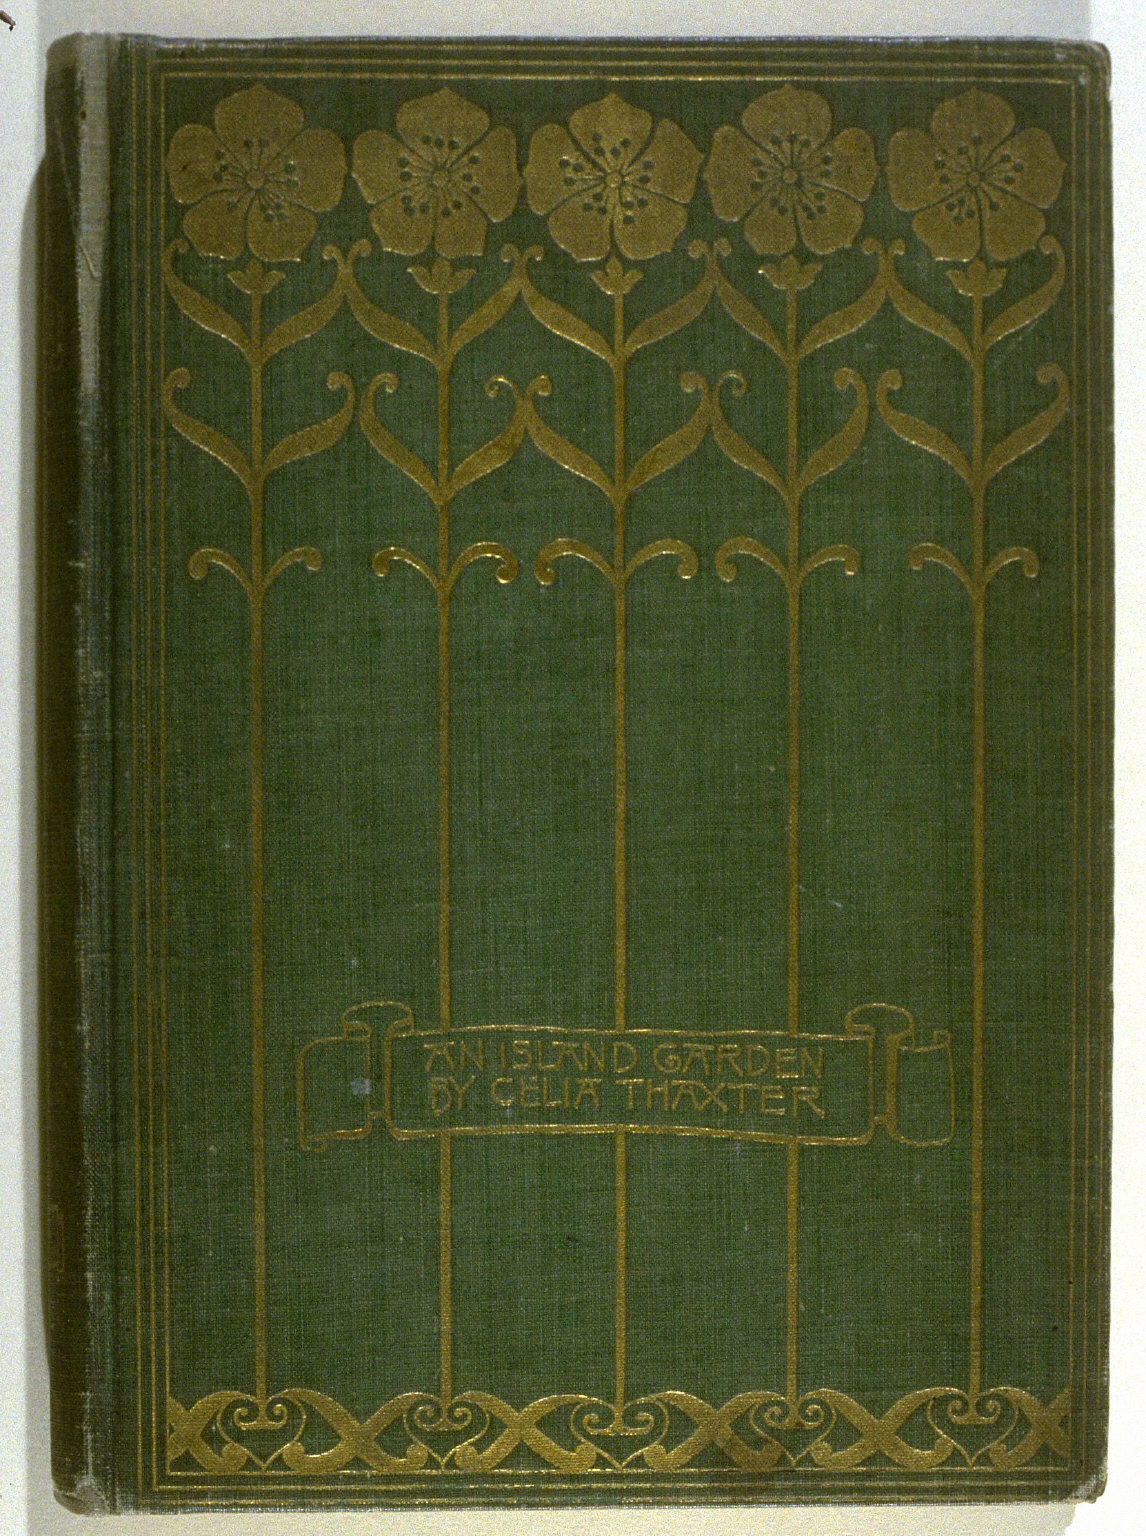 An Island Garden, a book by Celia Thaxter with pictures and illuminations by Childe Hassam